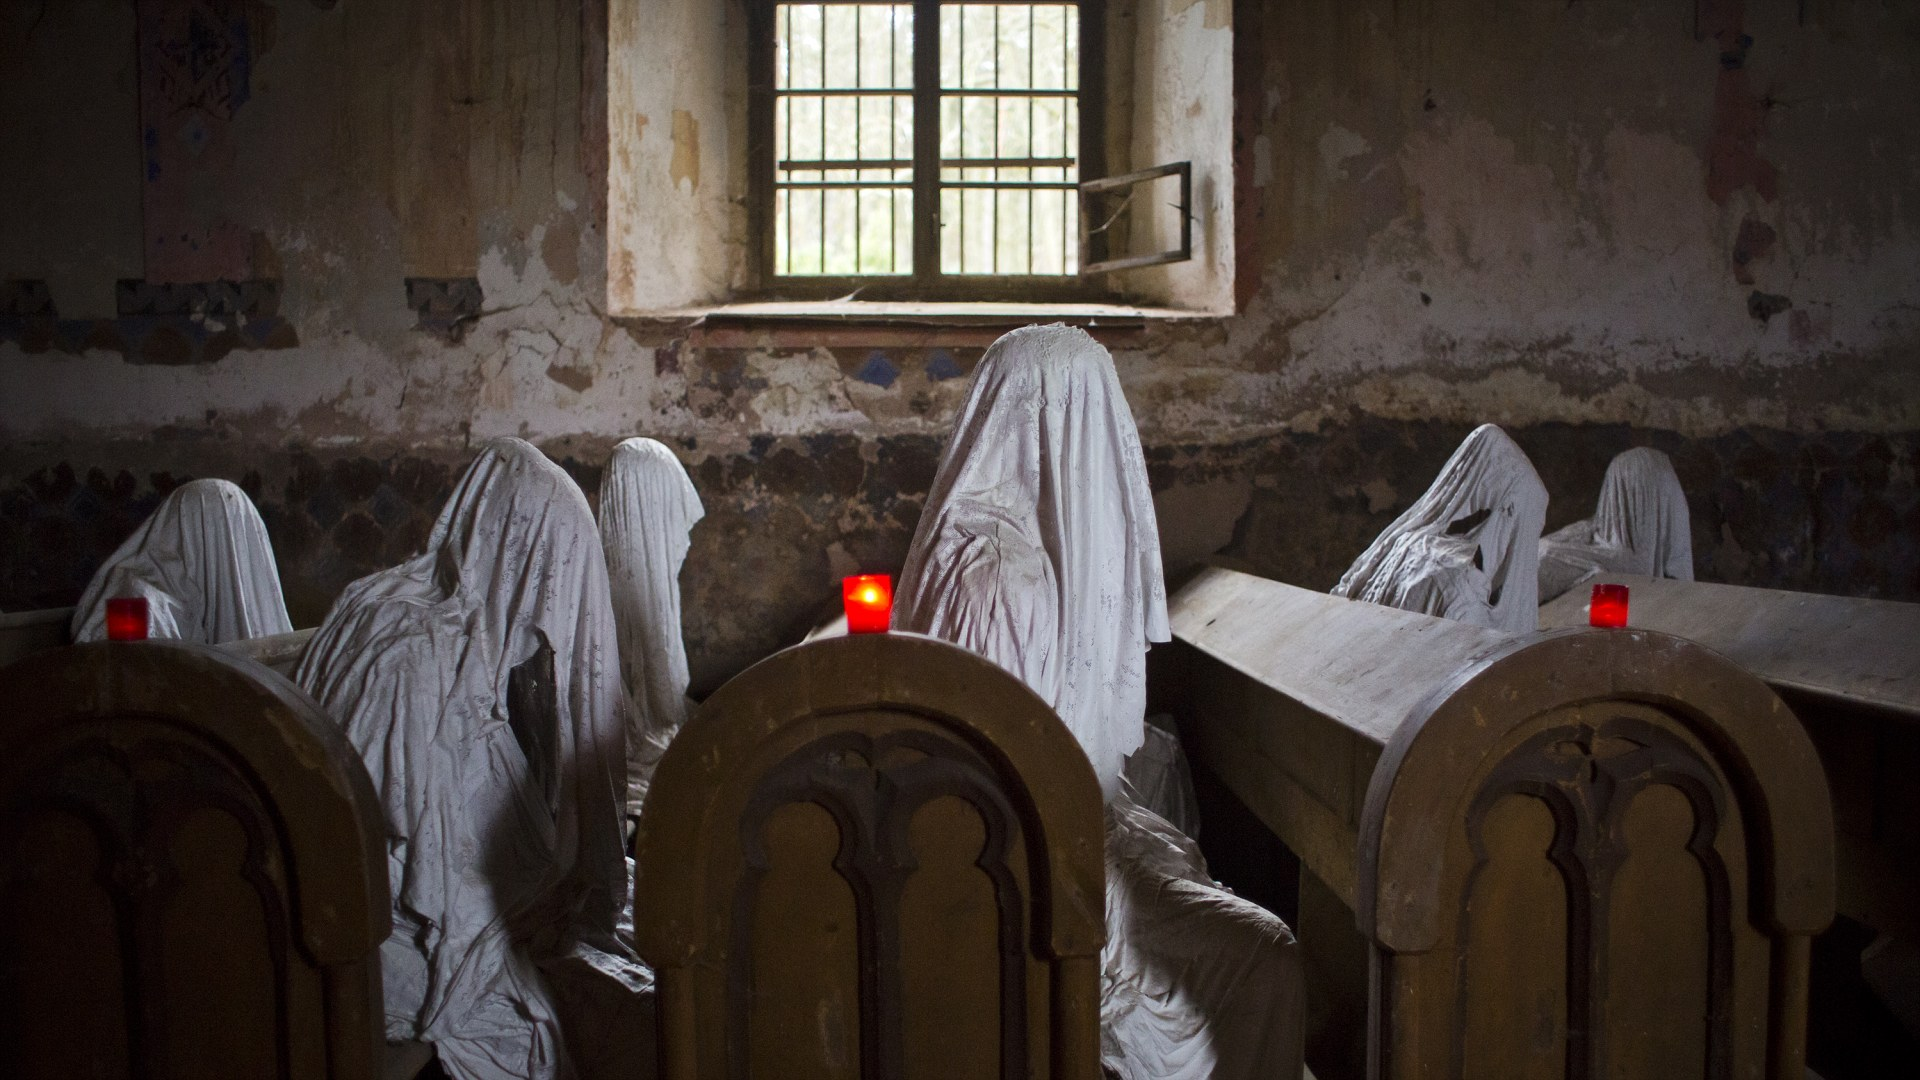 LUKOVA, CZECH REPUBLIC - NOVEMBER 16: Ghost statues by artist Jakub Hadrava are placed at the St. George's church near Plzen on November 16, 2014 in Lukova, Czech Republic. Artist Jakub Hadrava created 32 plaster life-size ghost statues, which symbolize Sudeten Germans who lived in the village. St. George's church, which was build in the north-western Bohemian region of the Czech Republic in 1352, fell into disrepair after the roof collapsed during a funeral service in 1968. Hadrava's aim is to make the church more attractive for visitors and to gain money for renovation work. According to voluntary church manager Petr Koukl, about 2500 people from around the world have been visiting the church this year. (Photo by Matej Divizna/Getty Images)